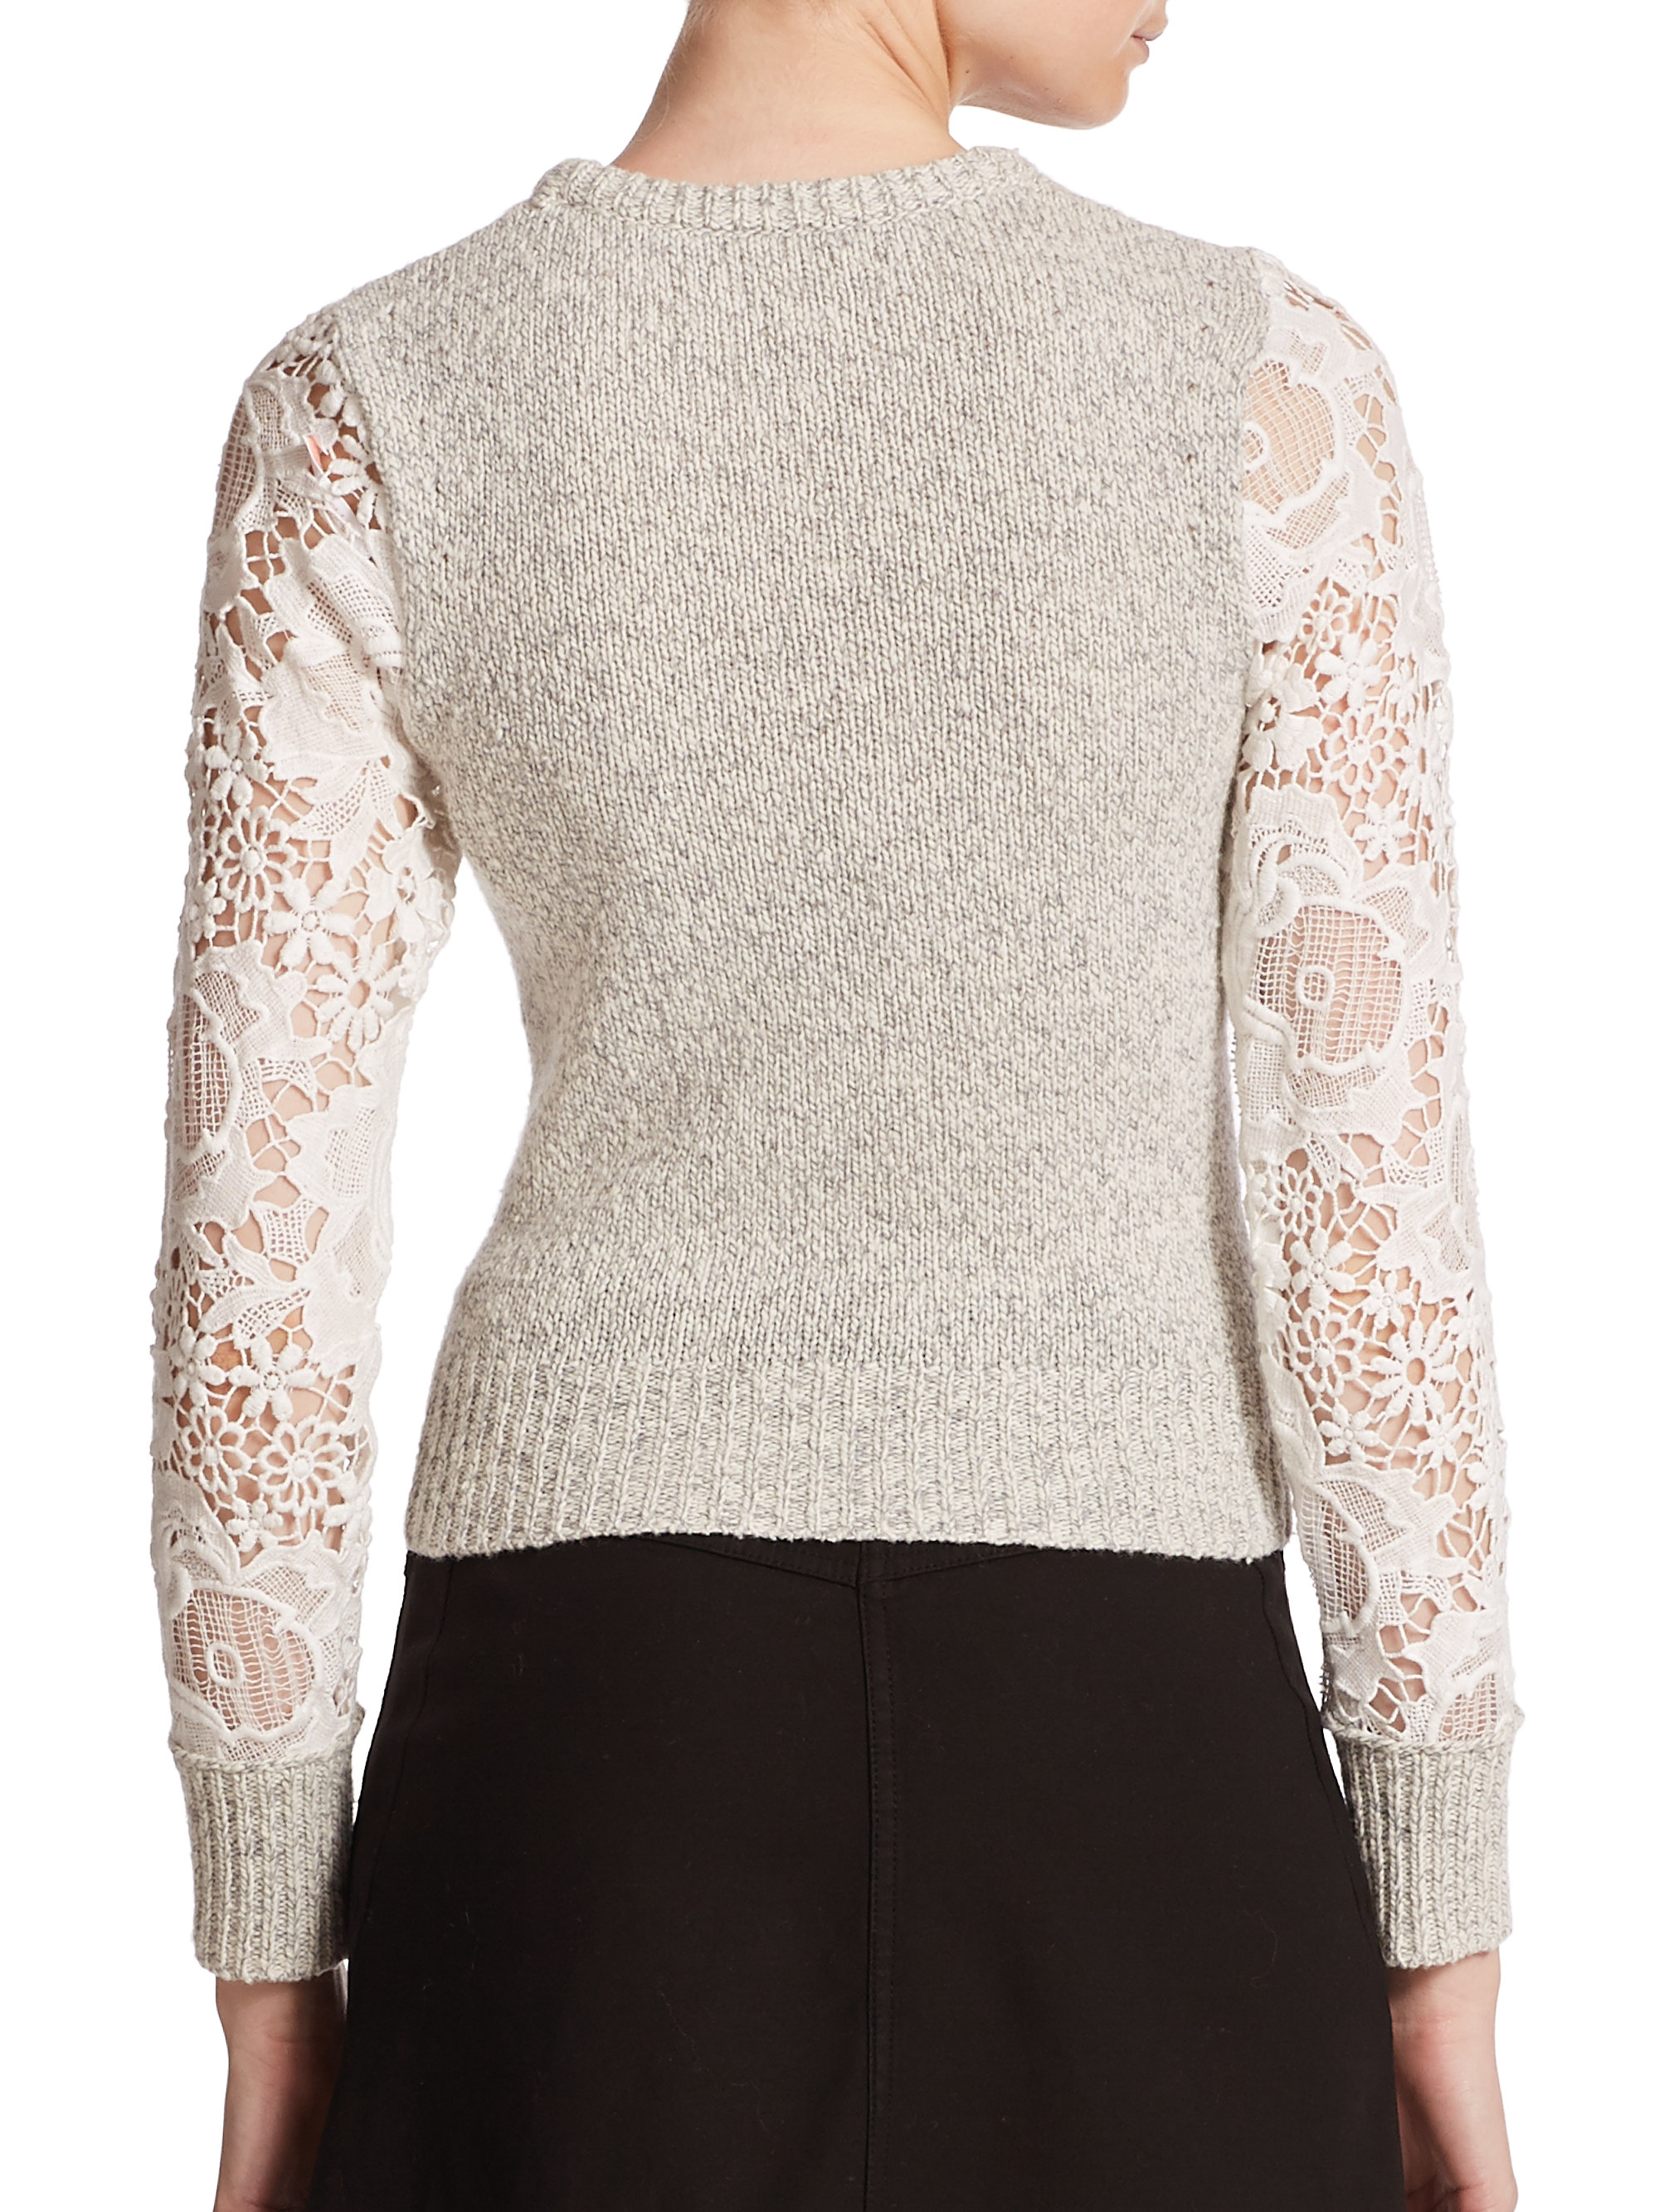 See by chloé Lace Knit Sweater in Natural | Lyst